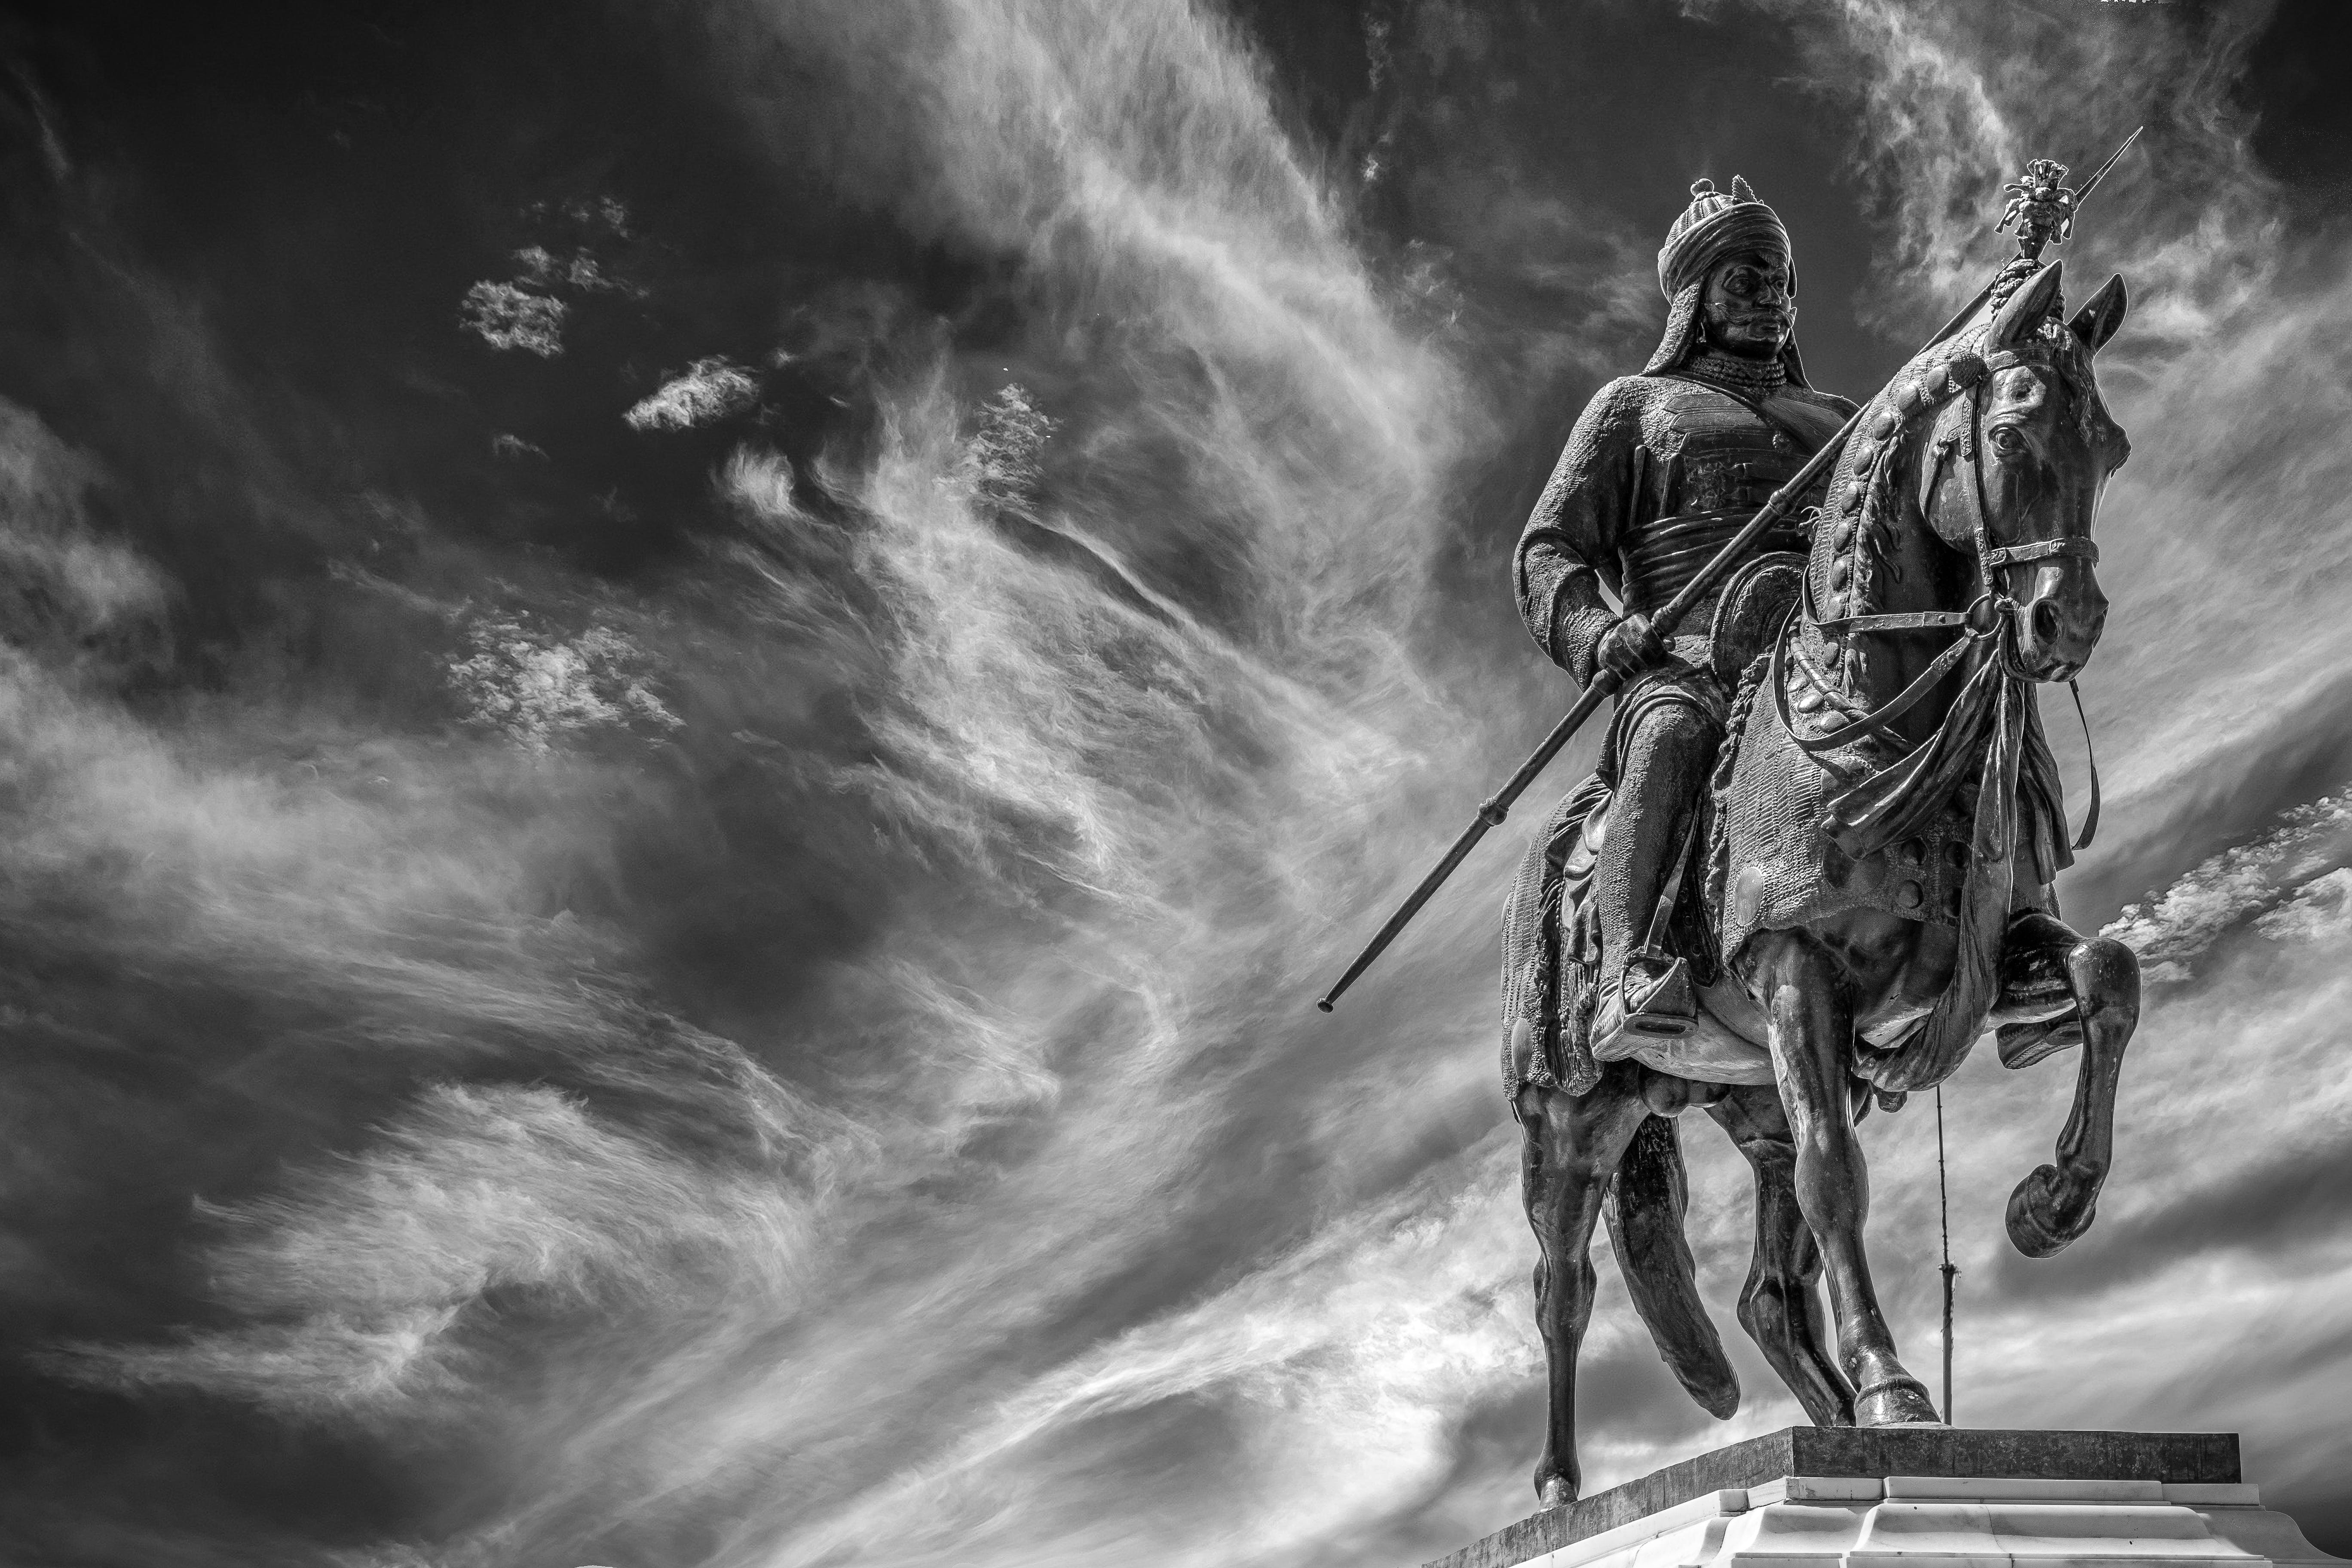 Gray Scale Photography of Man Riding Horse While Holding Spear